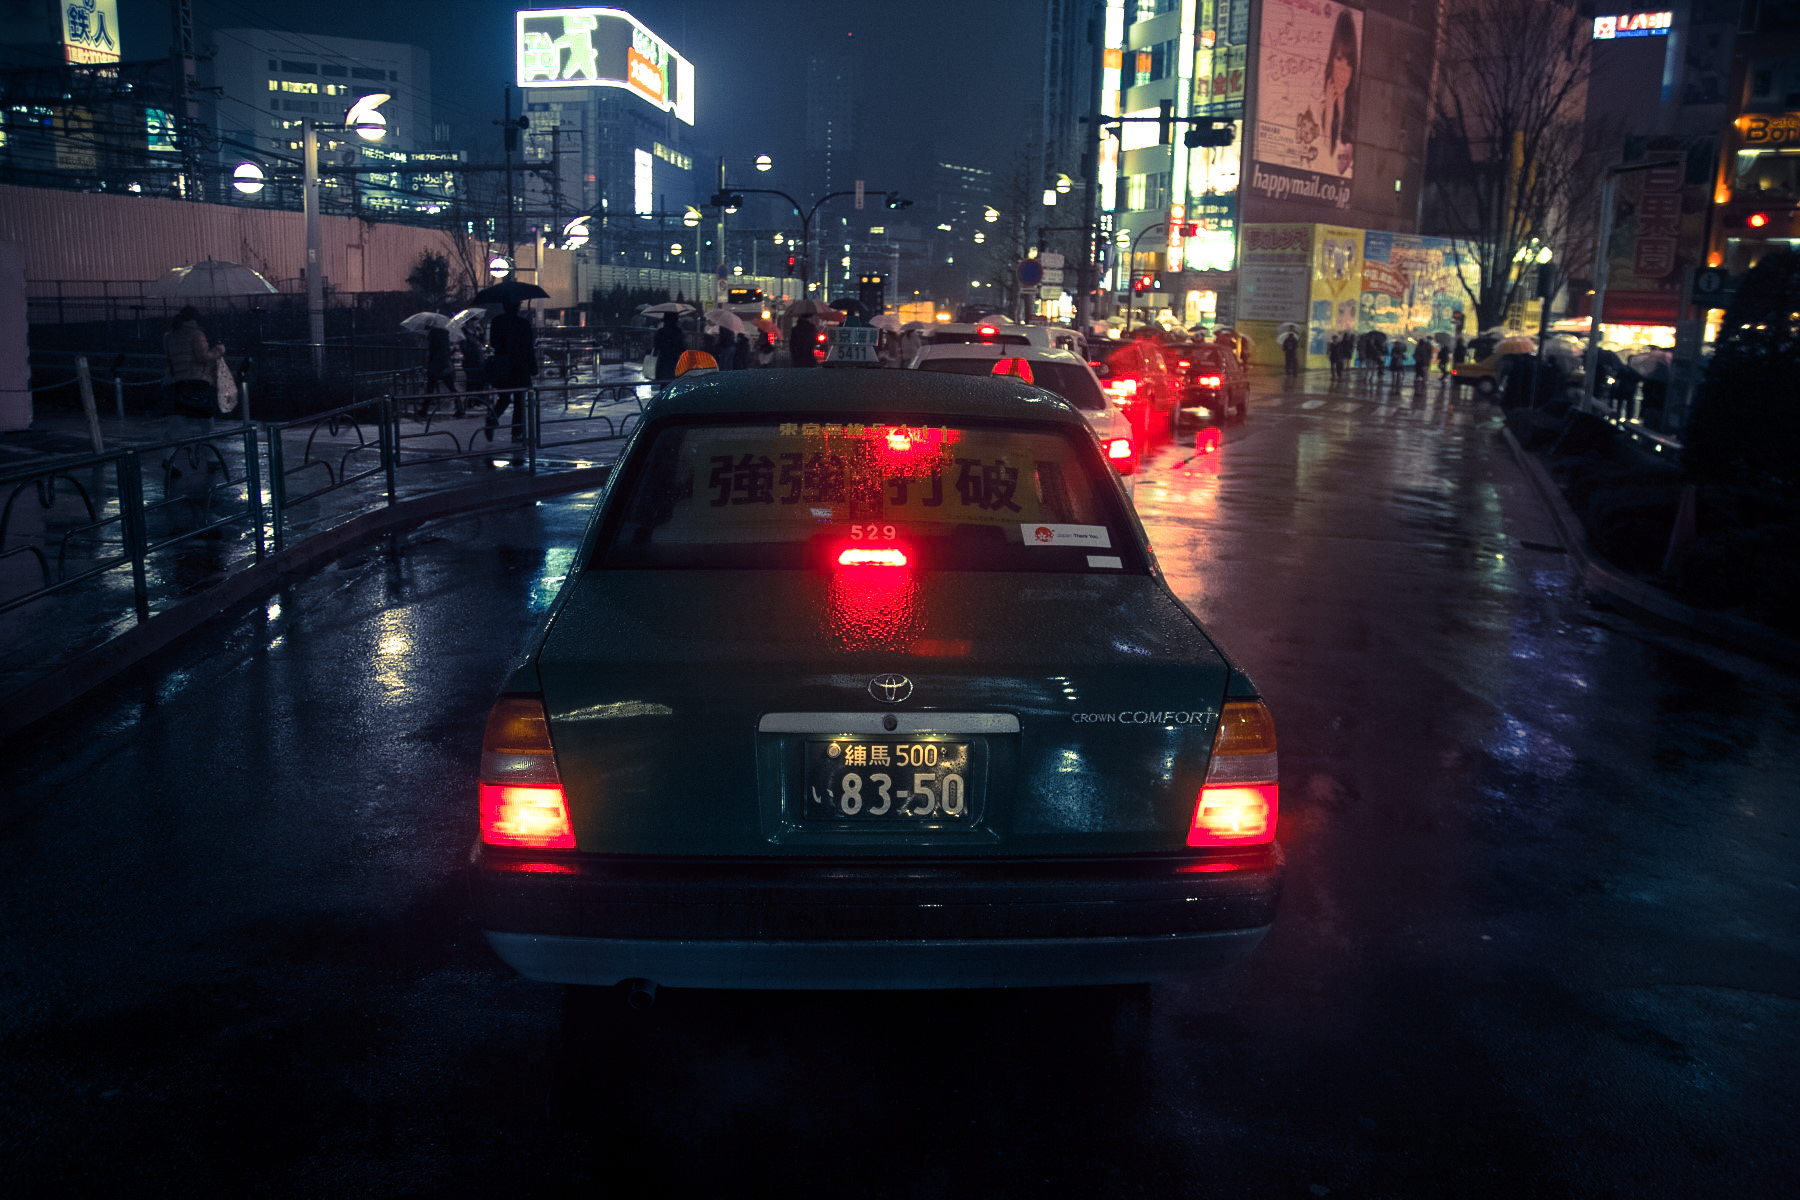 Toyota Taxi